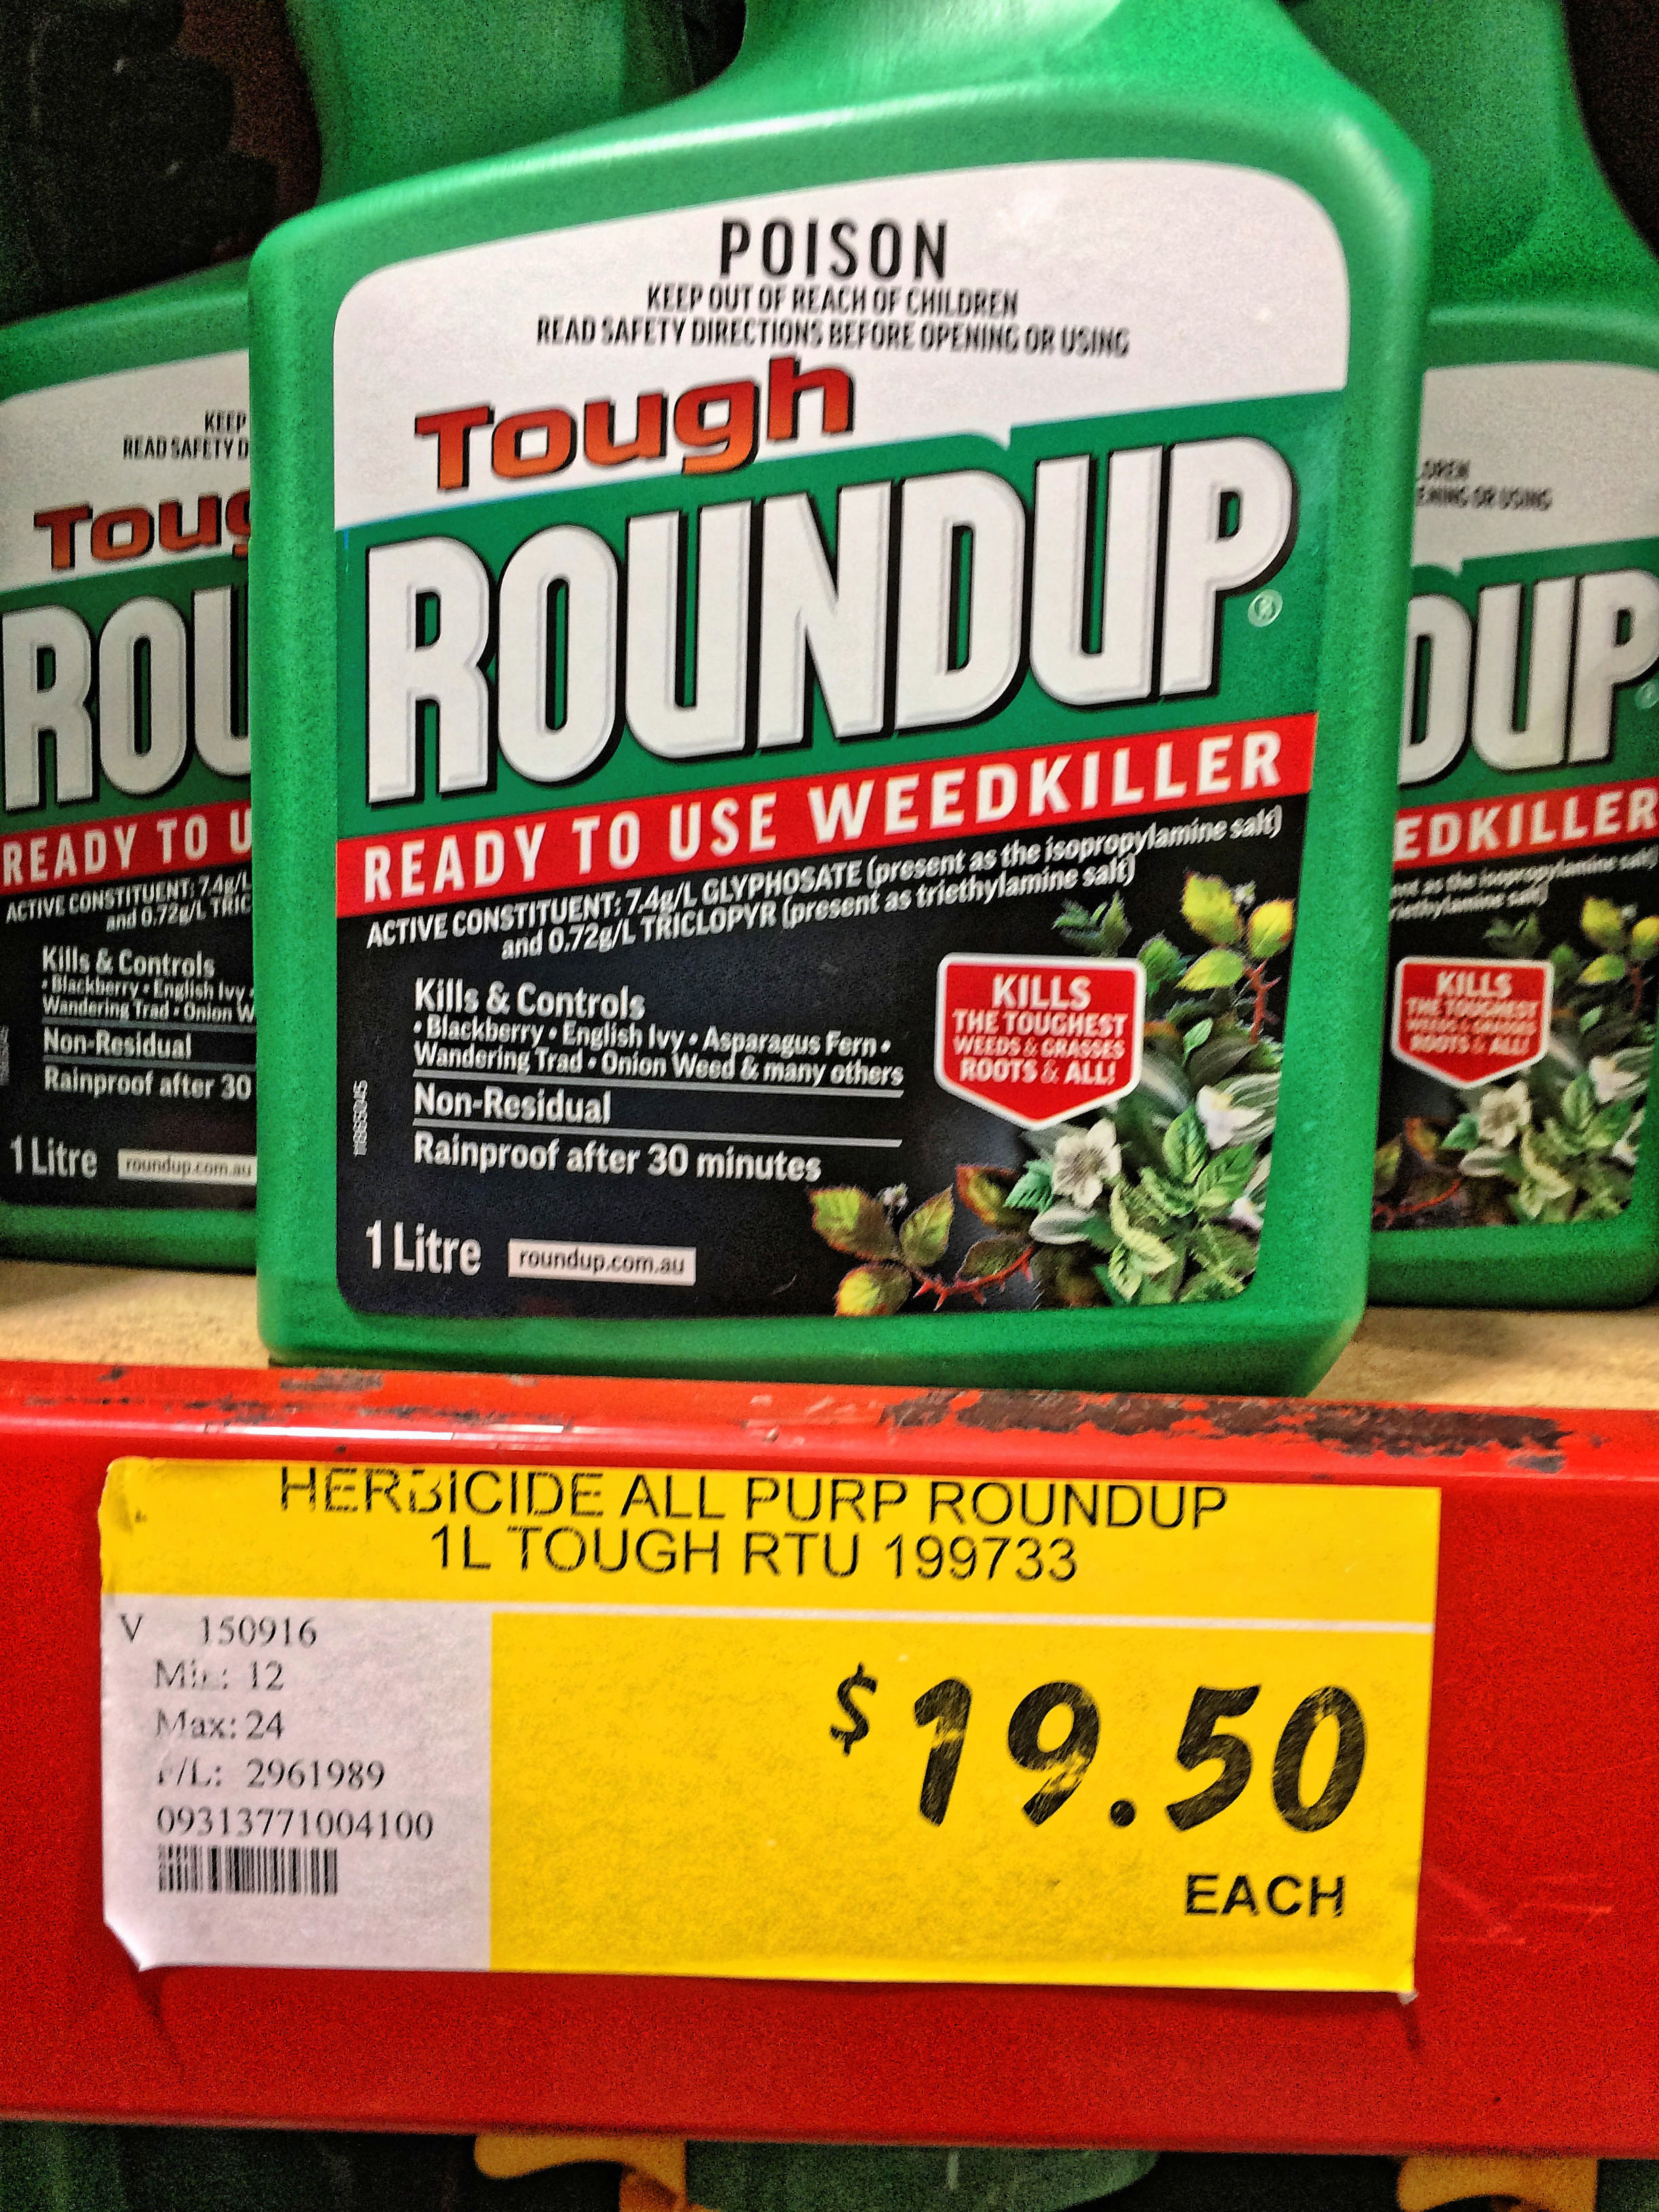 This should be Glyphosate-8.jpeg.  Is it missing?